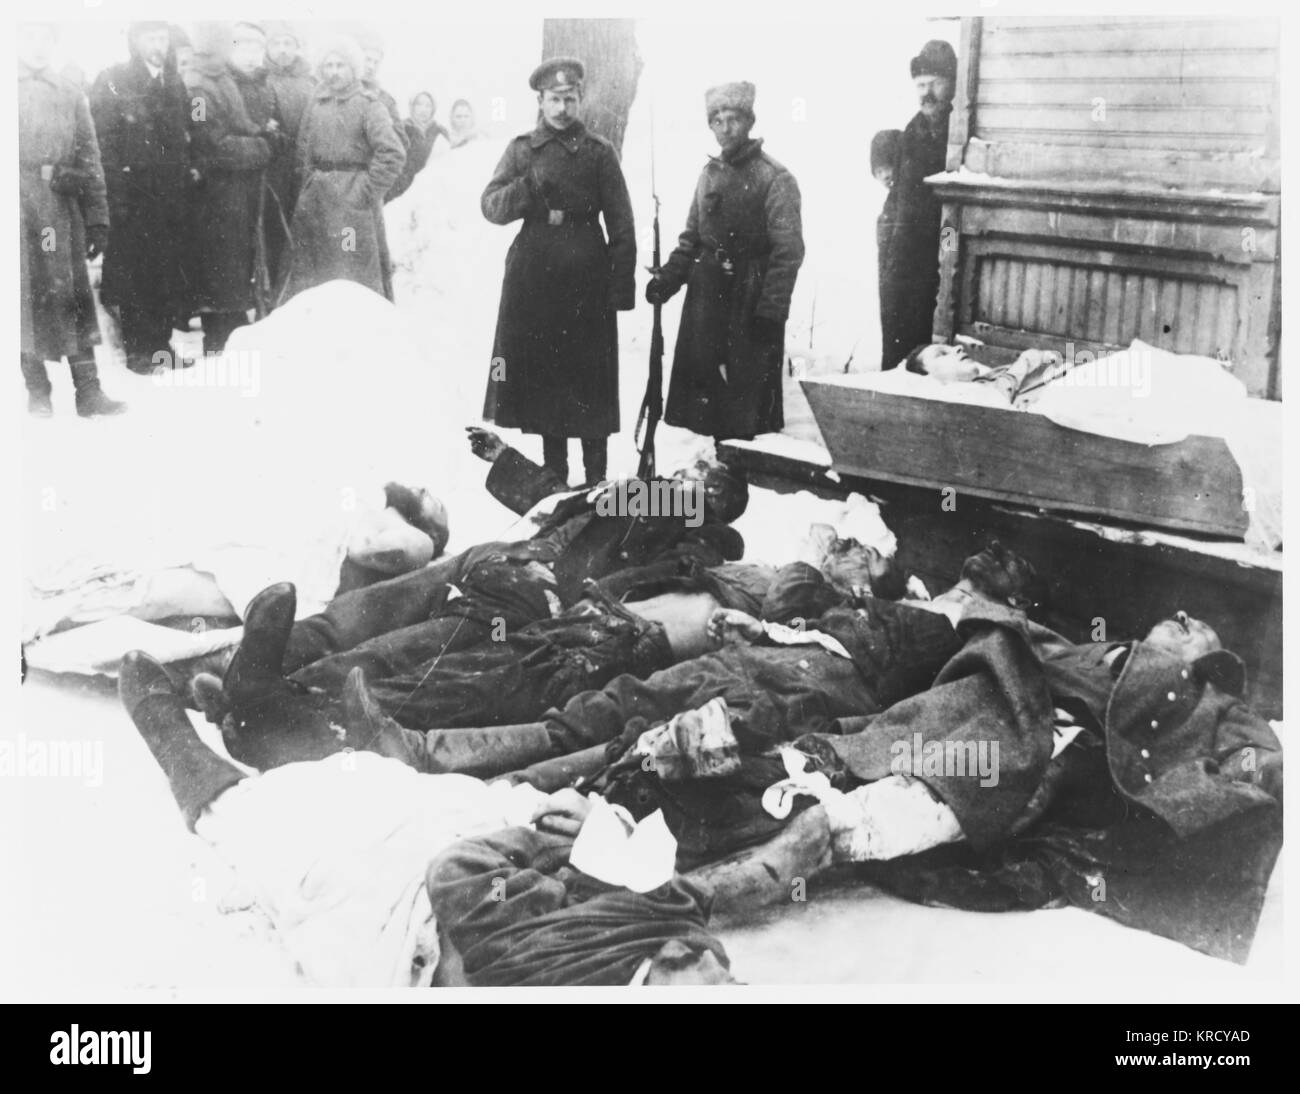 Victims of the 'February  Revolution'.         Date: 23 March 1917 - Stock Image